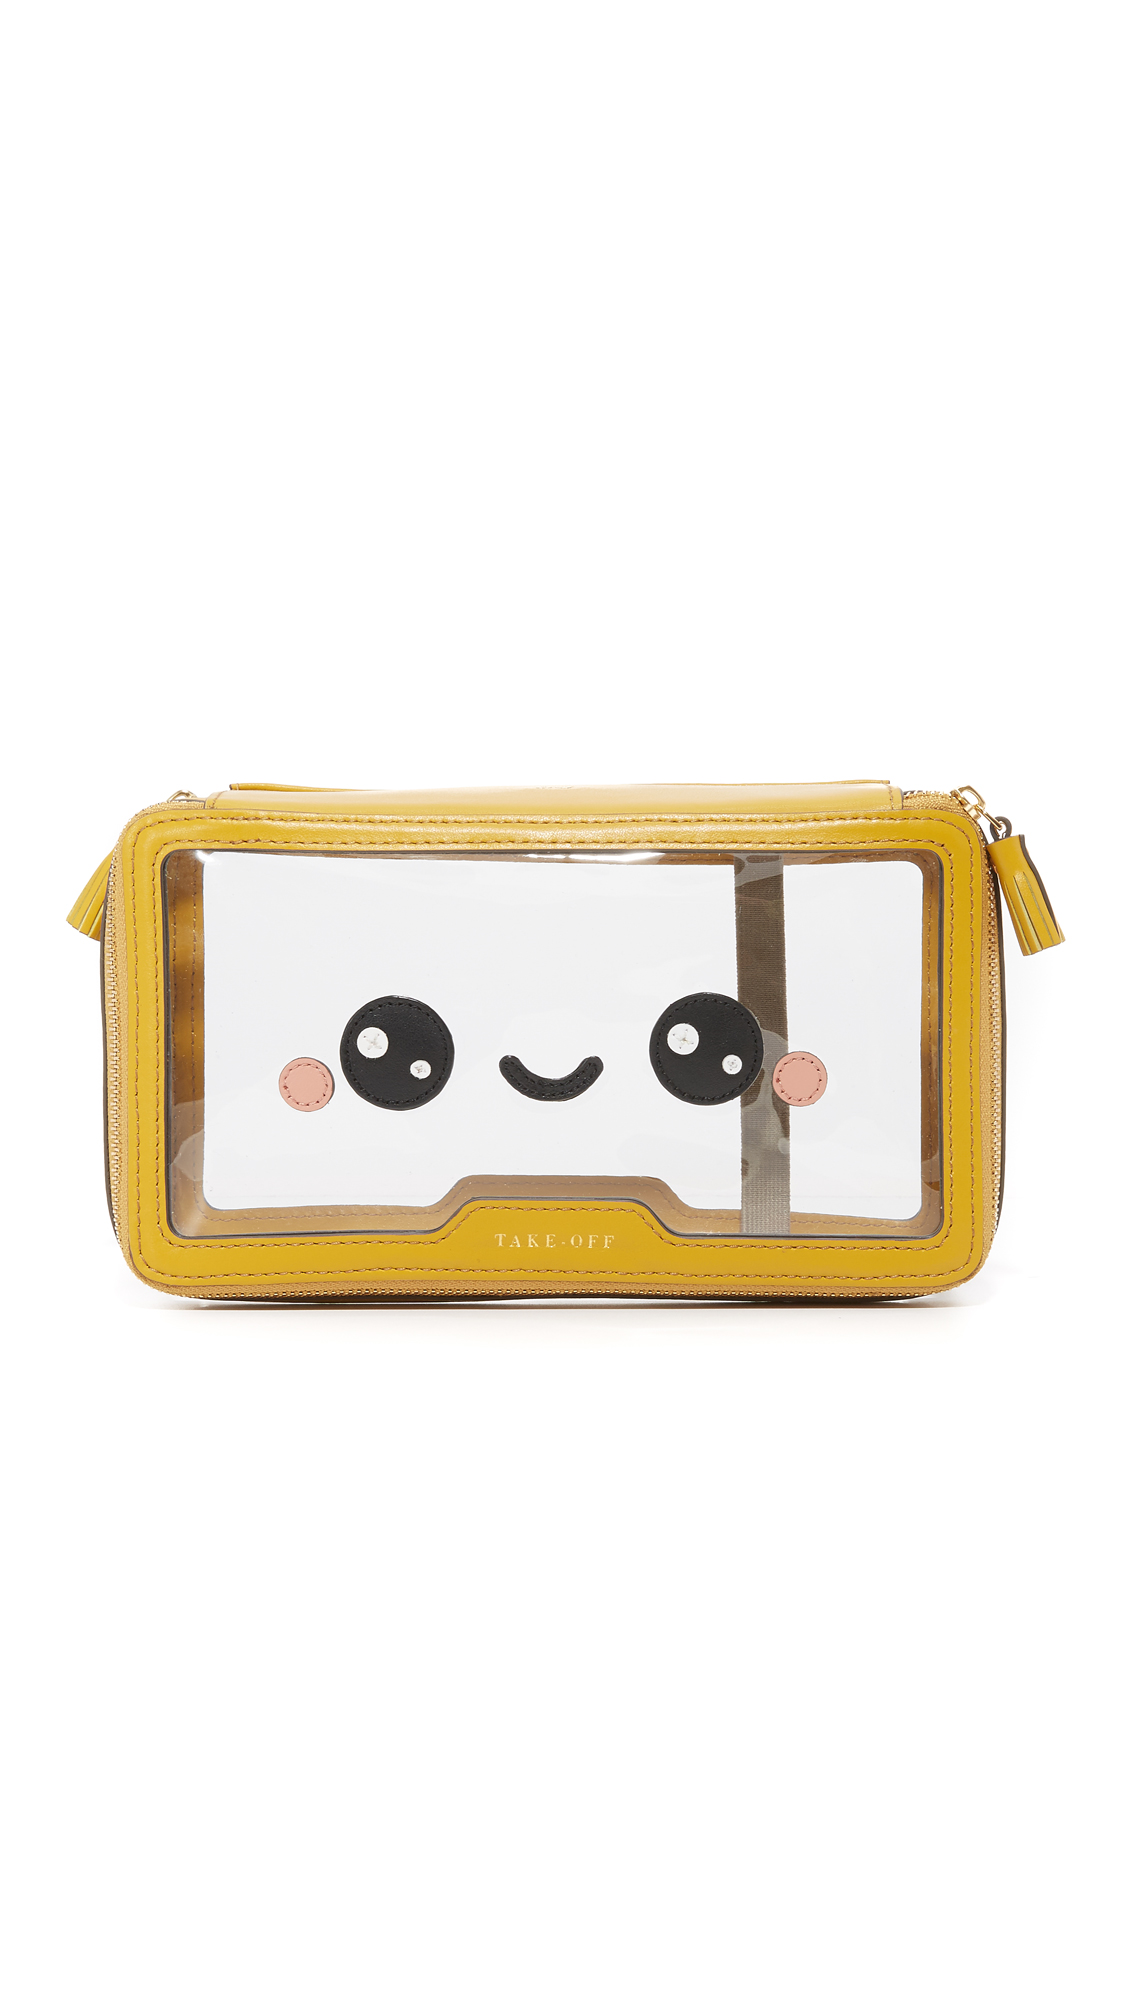 anya hindmarch female 444715 anya hindmarch inflight kawaii happy pouch clearmustard